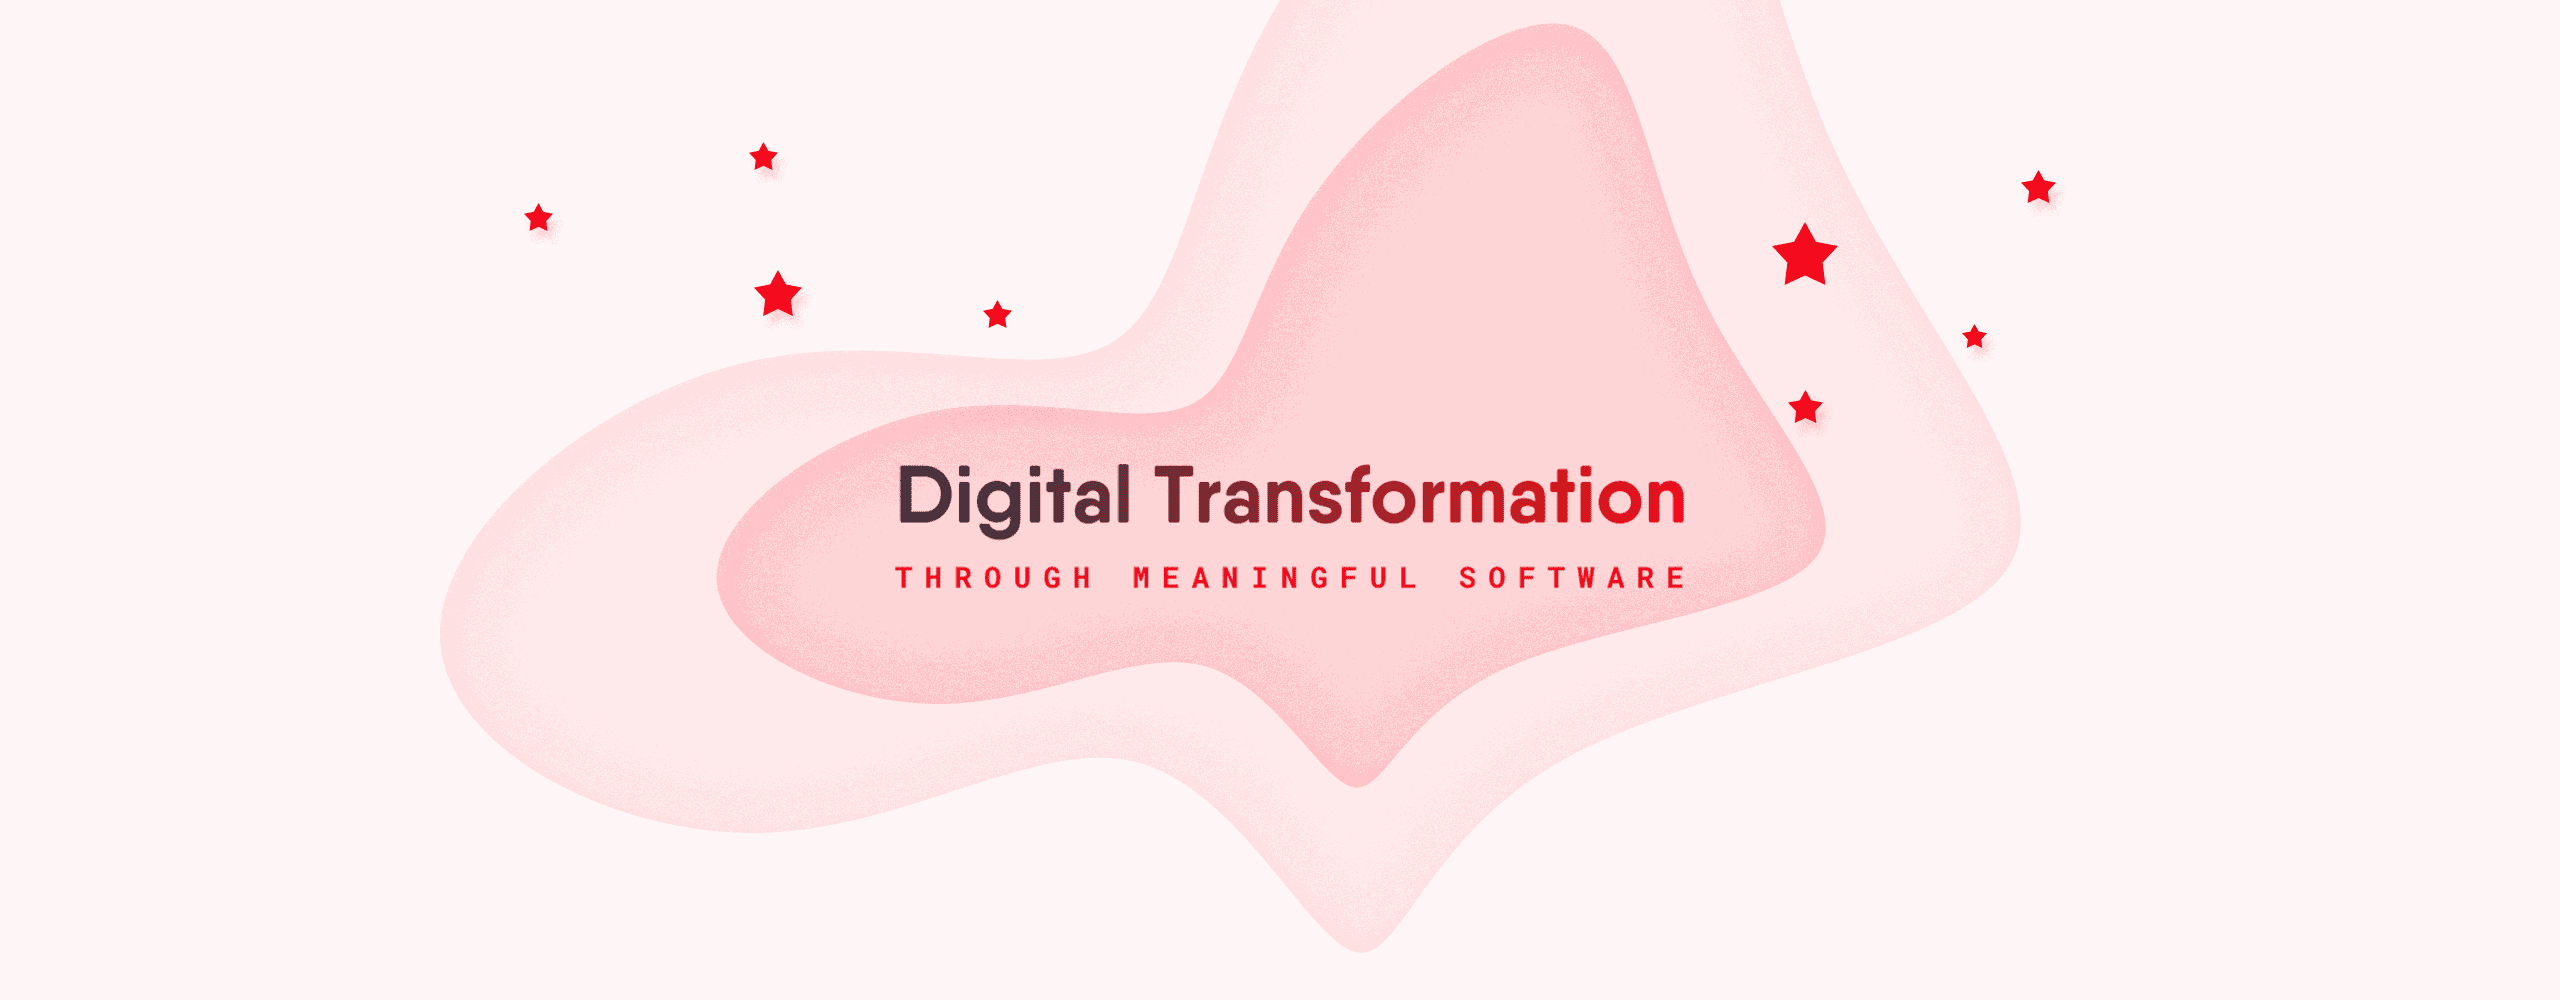 Digital Transformation - HR Tech